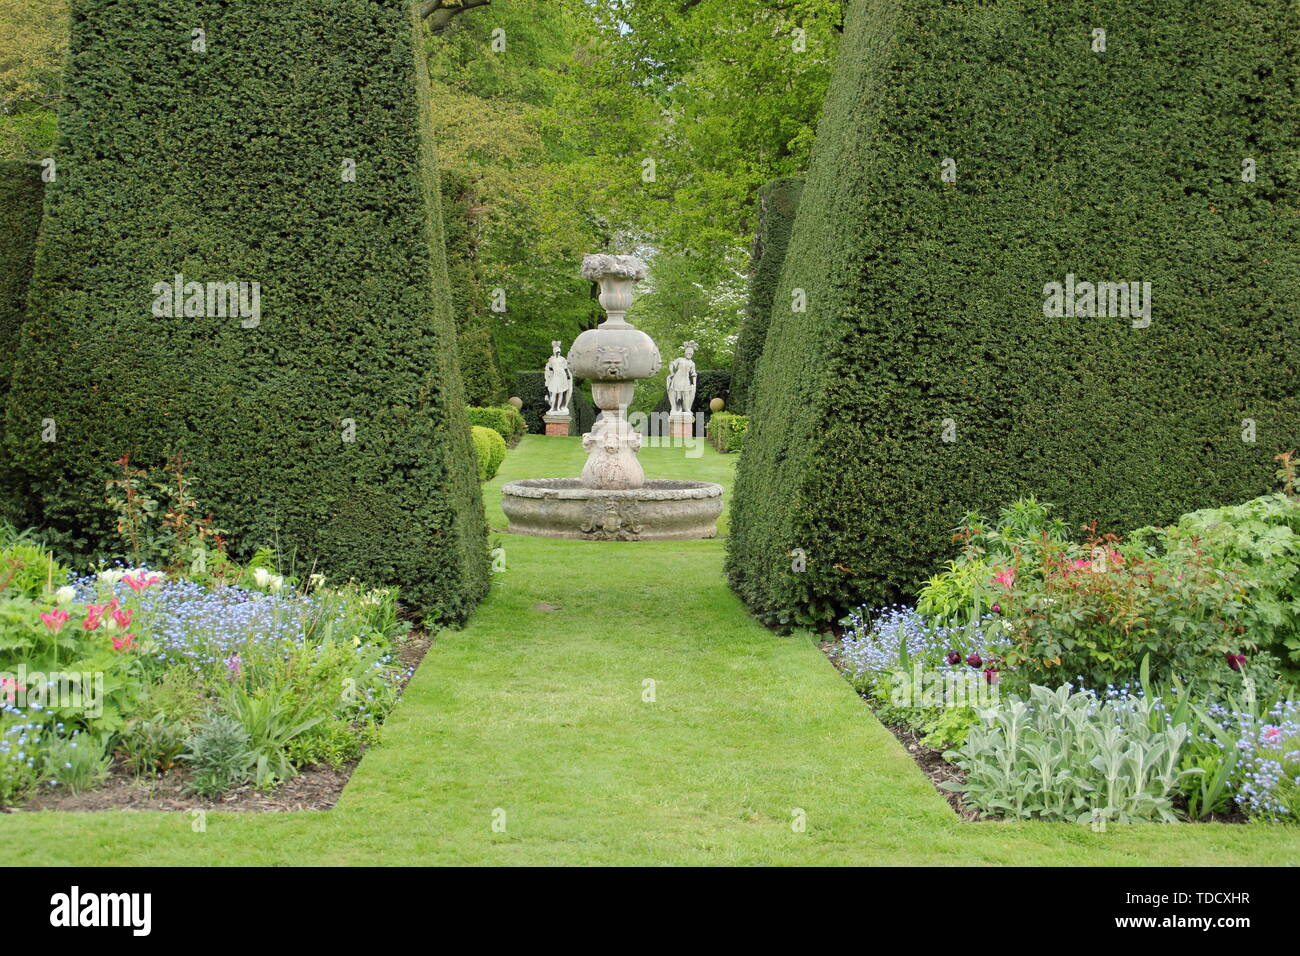 Taxus baccata. Statuary and herbacrous borders seen from yew hedging in the Italianate gardens at Renishaw Hall and Gardens, Derbyshire in May - Stock Image